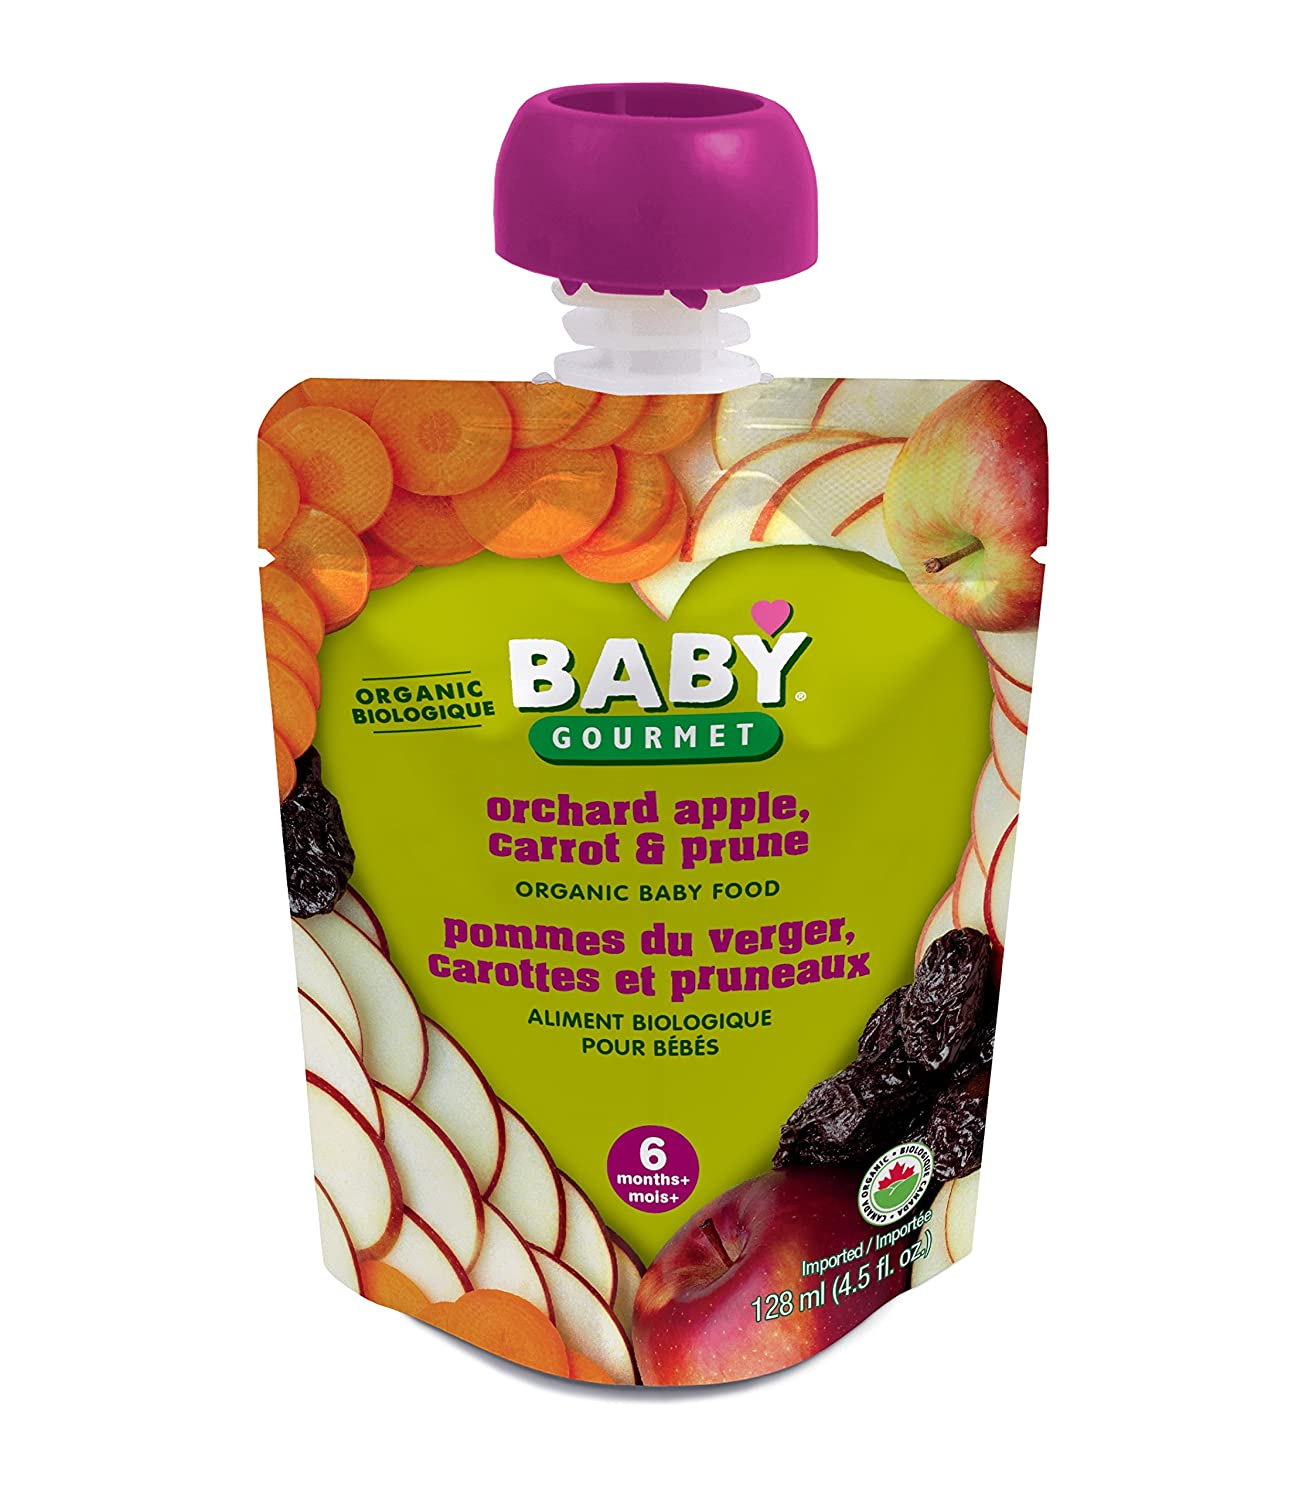 Baby Gourmet Orchard Apple Carrot and Prune, 12-Pack Baby Gourmet Foods Inc OACP4BGCSCD0012